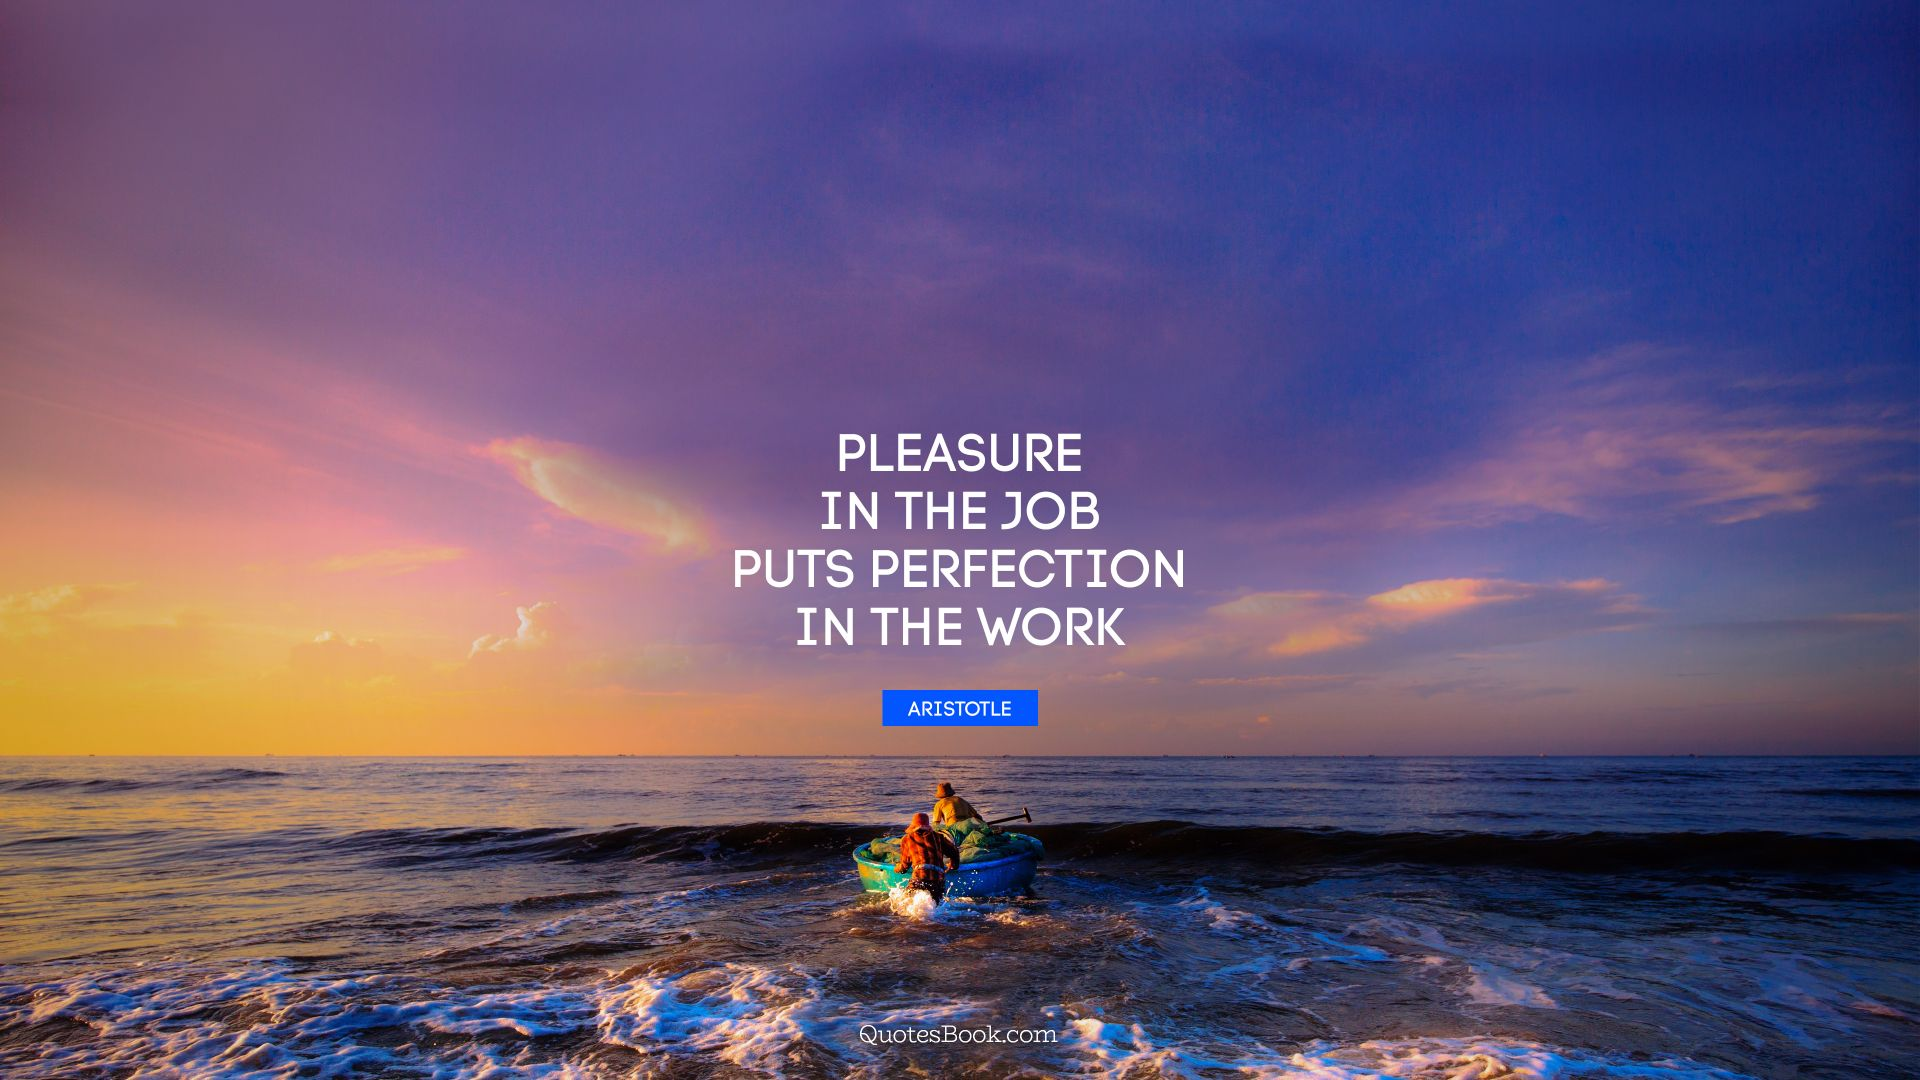 Pleasure in the job puts perfection in the work. - Quote by Aristotle